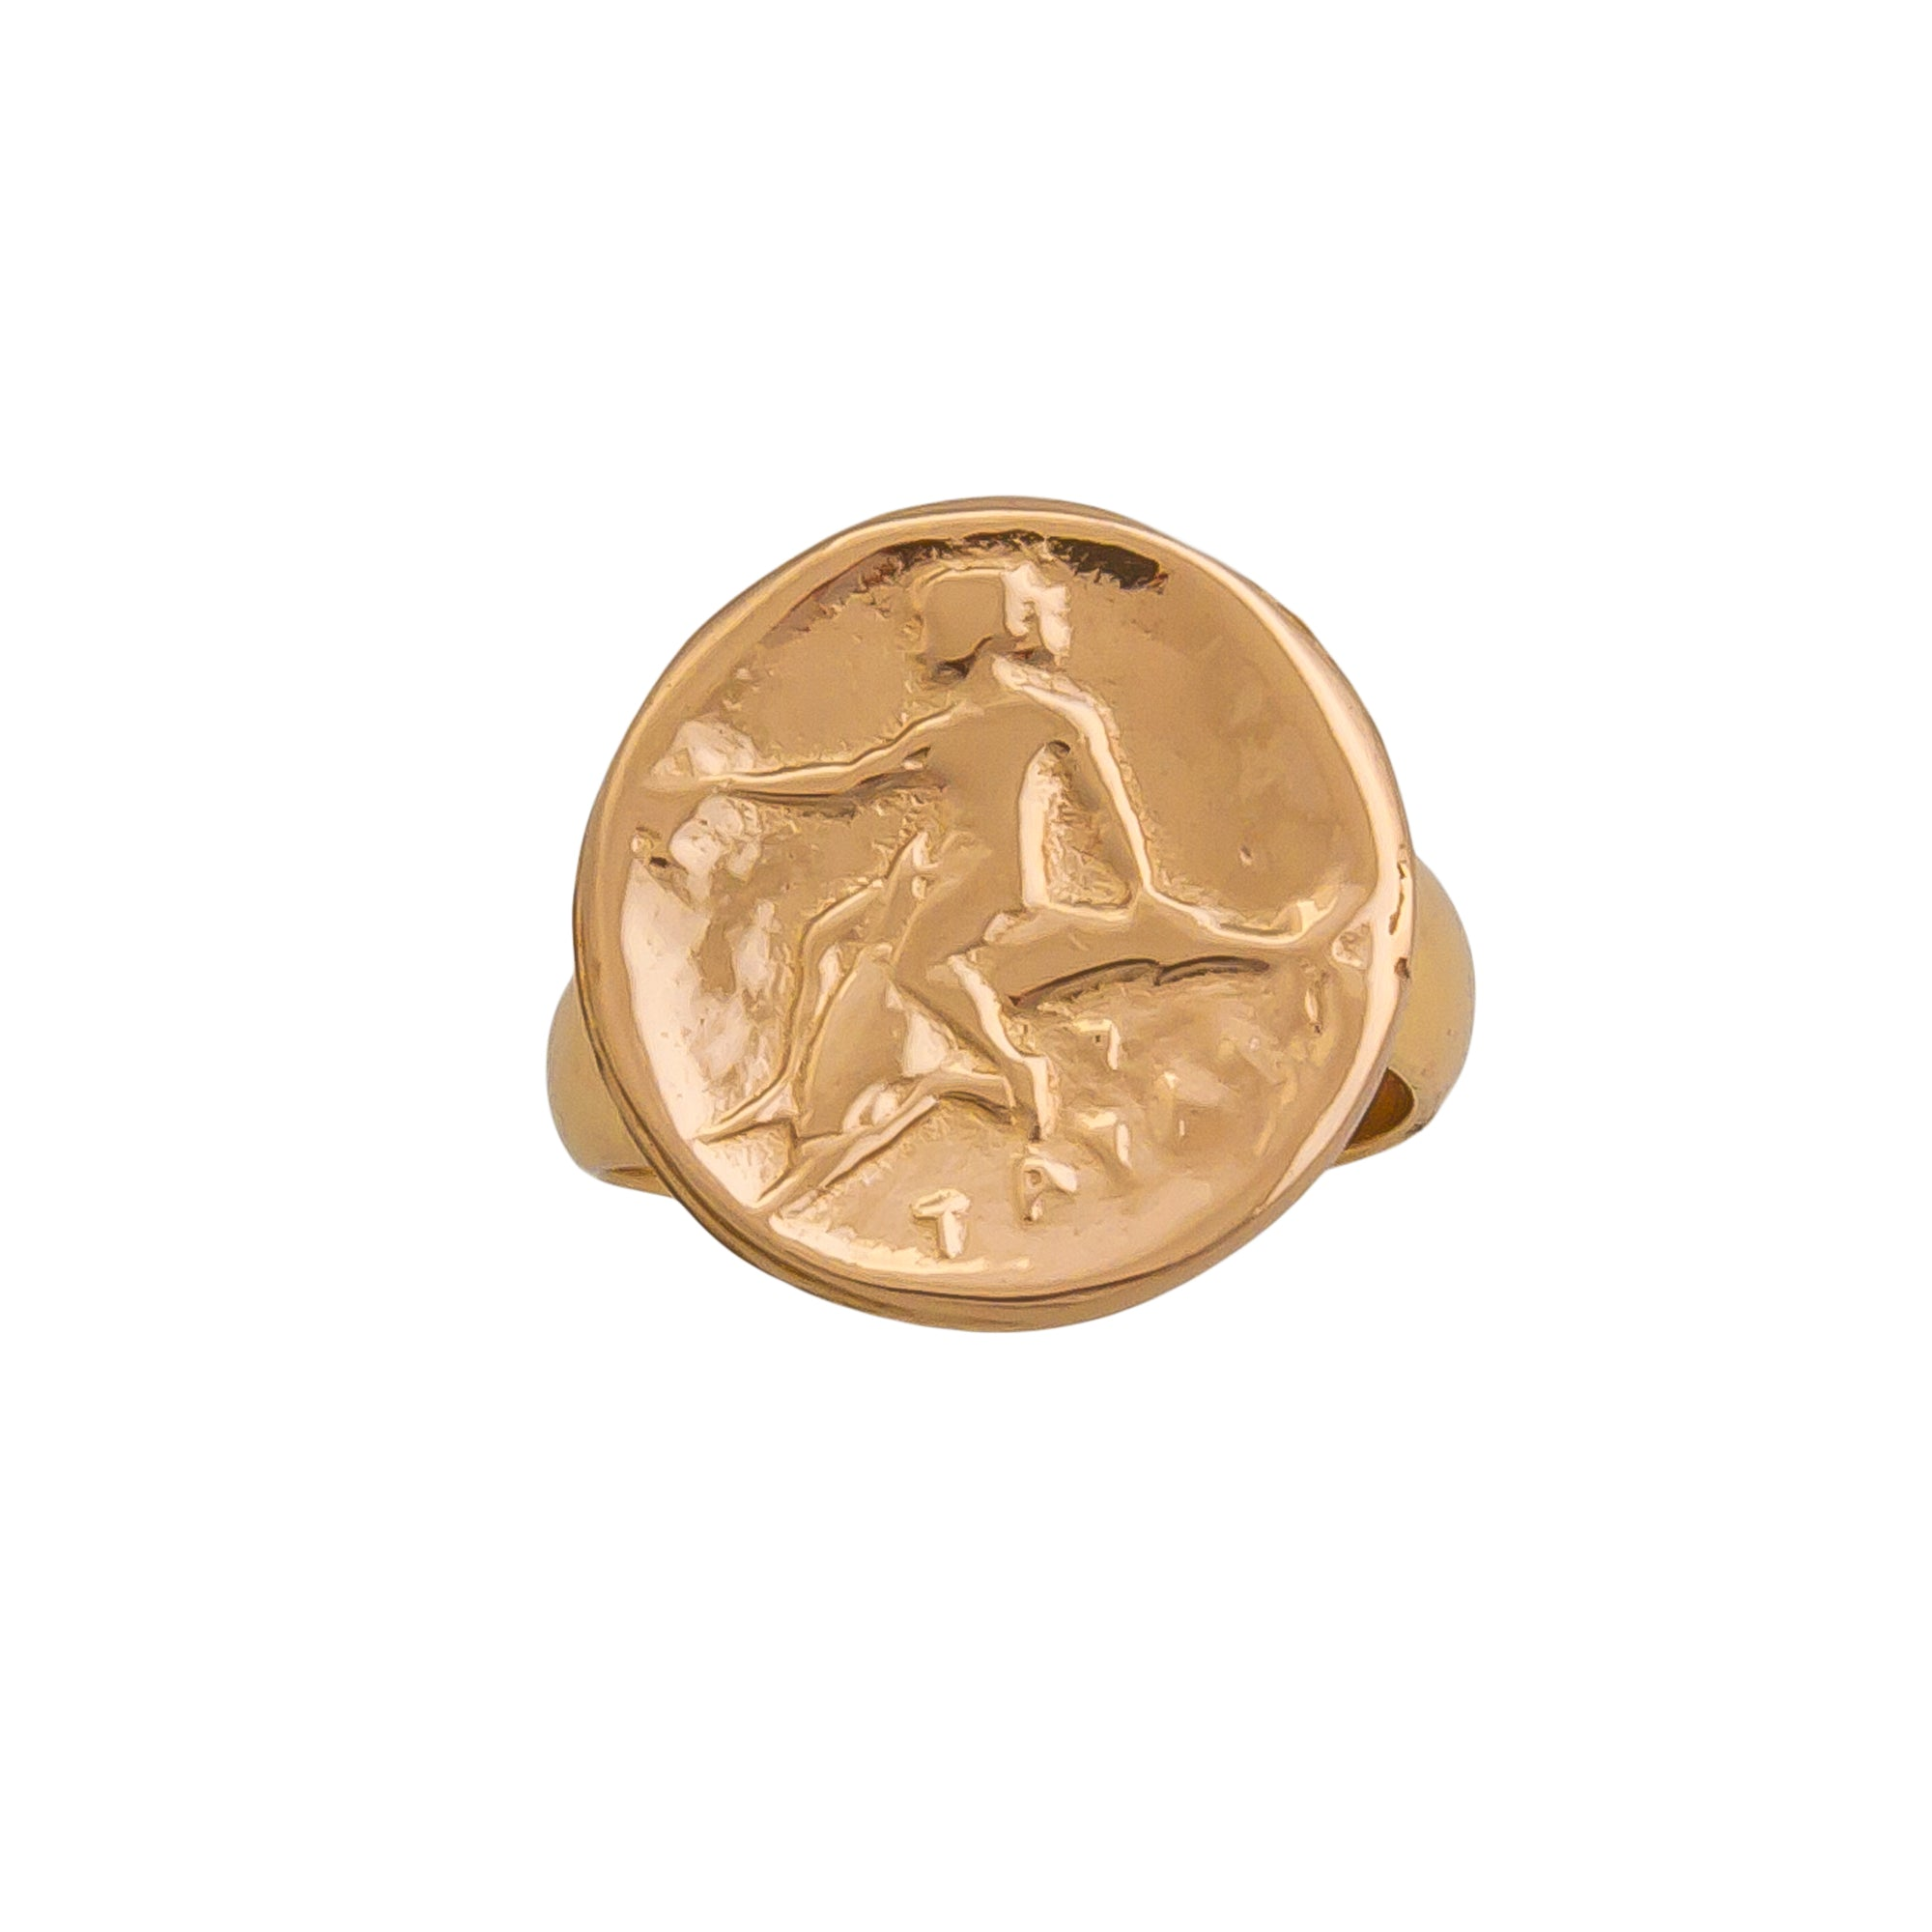 Alchemia Replica Boy on Dolphin Adjustable Ring | Charles Albert Jewelry